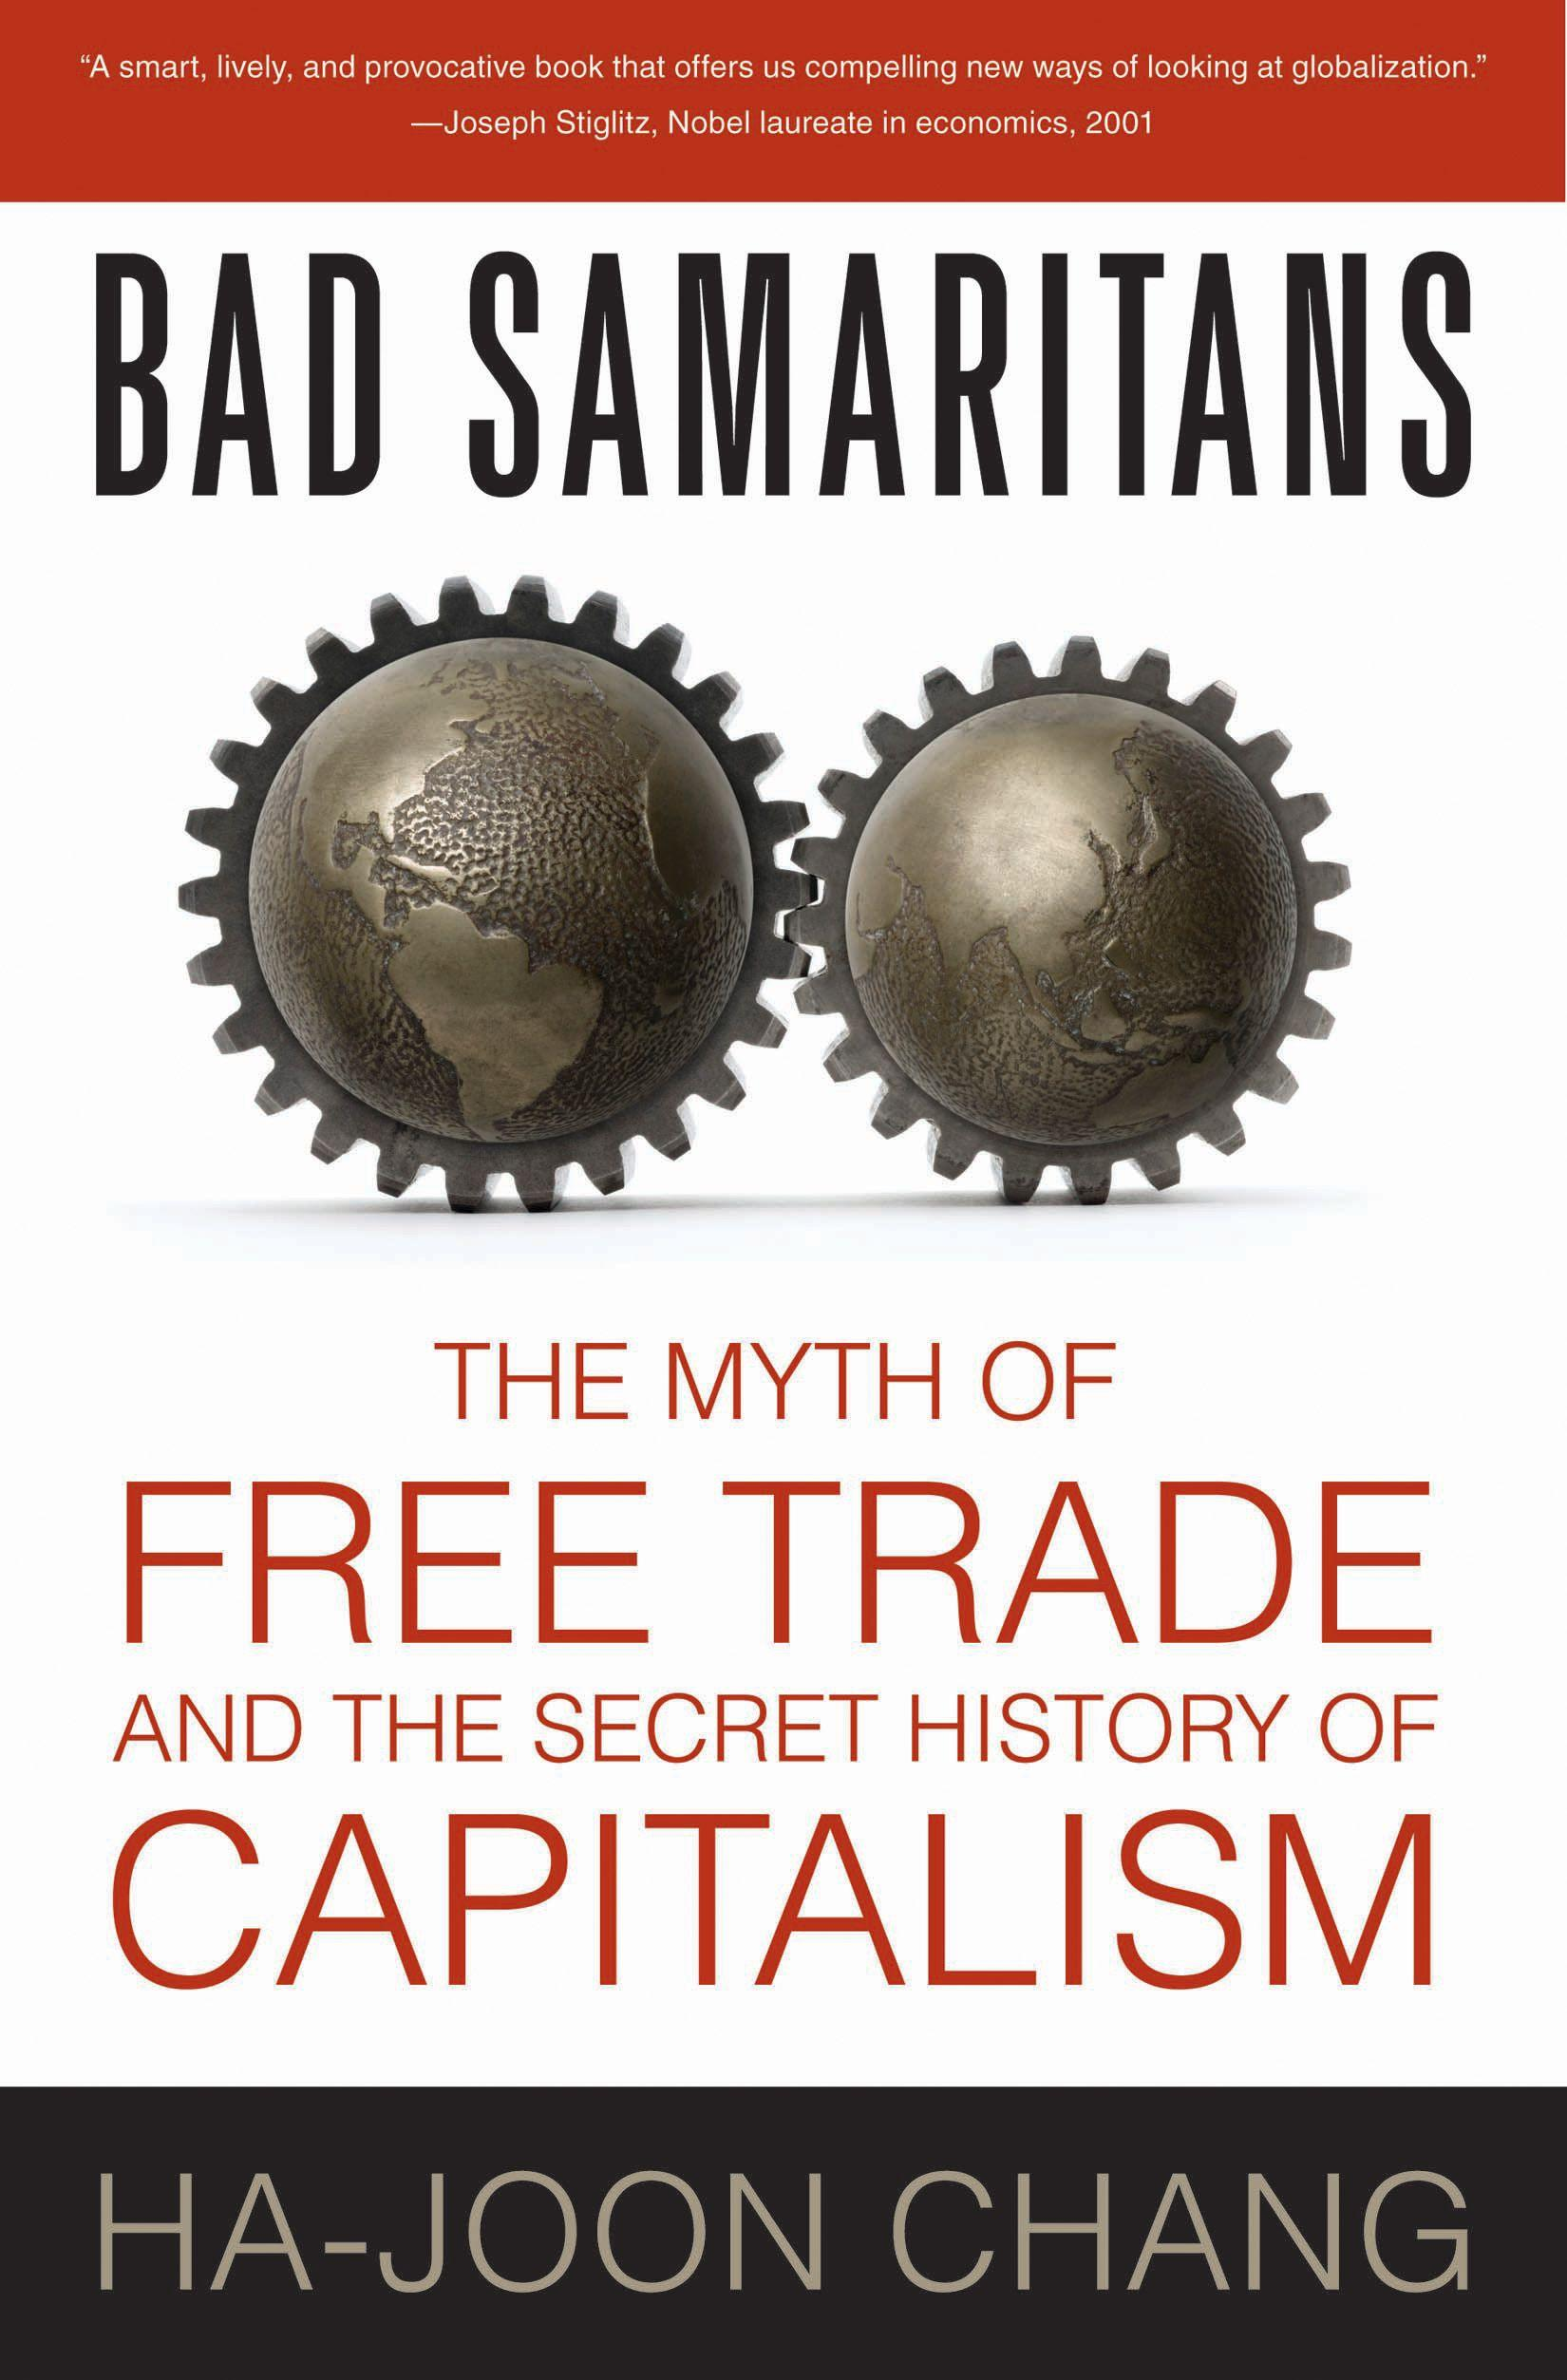 book review bad samaritans So, if you're going to read only one book about free trade and neoliberalism in relation to developing nations, this is the one to read the bottom line is this: the standard advice given by western economists and experts about how to modernize or industrialize is wrong, actively harmful, and hurts countries.